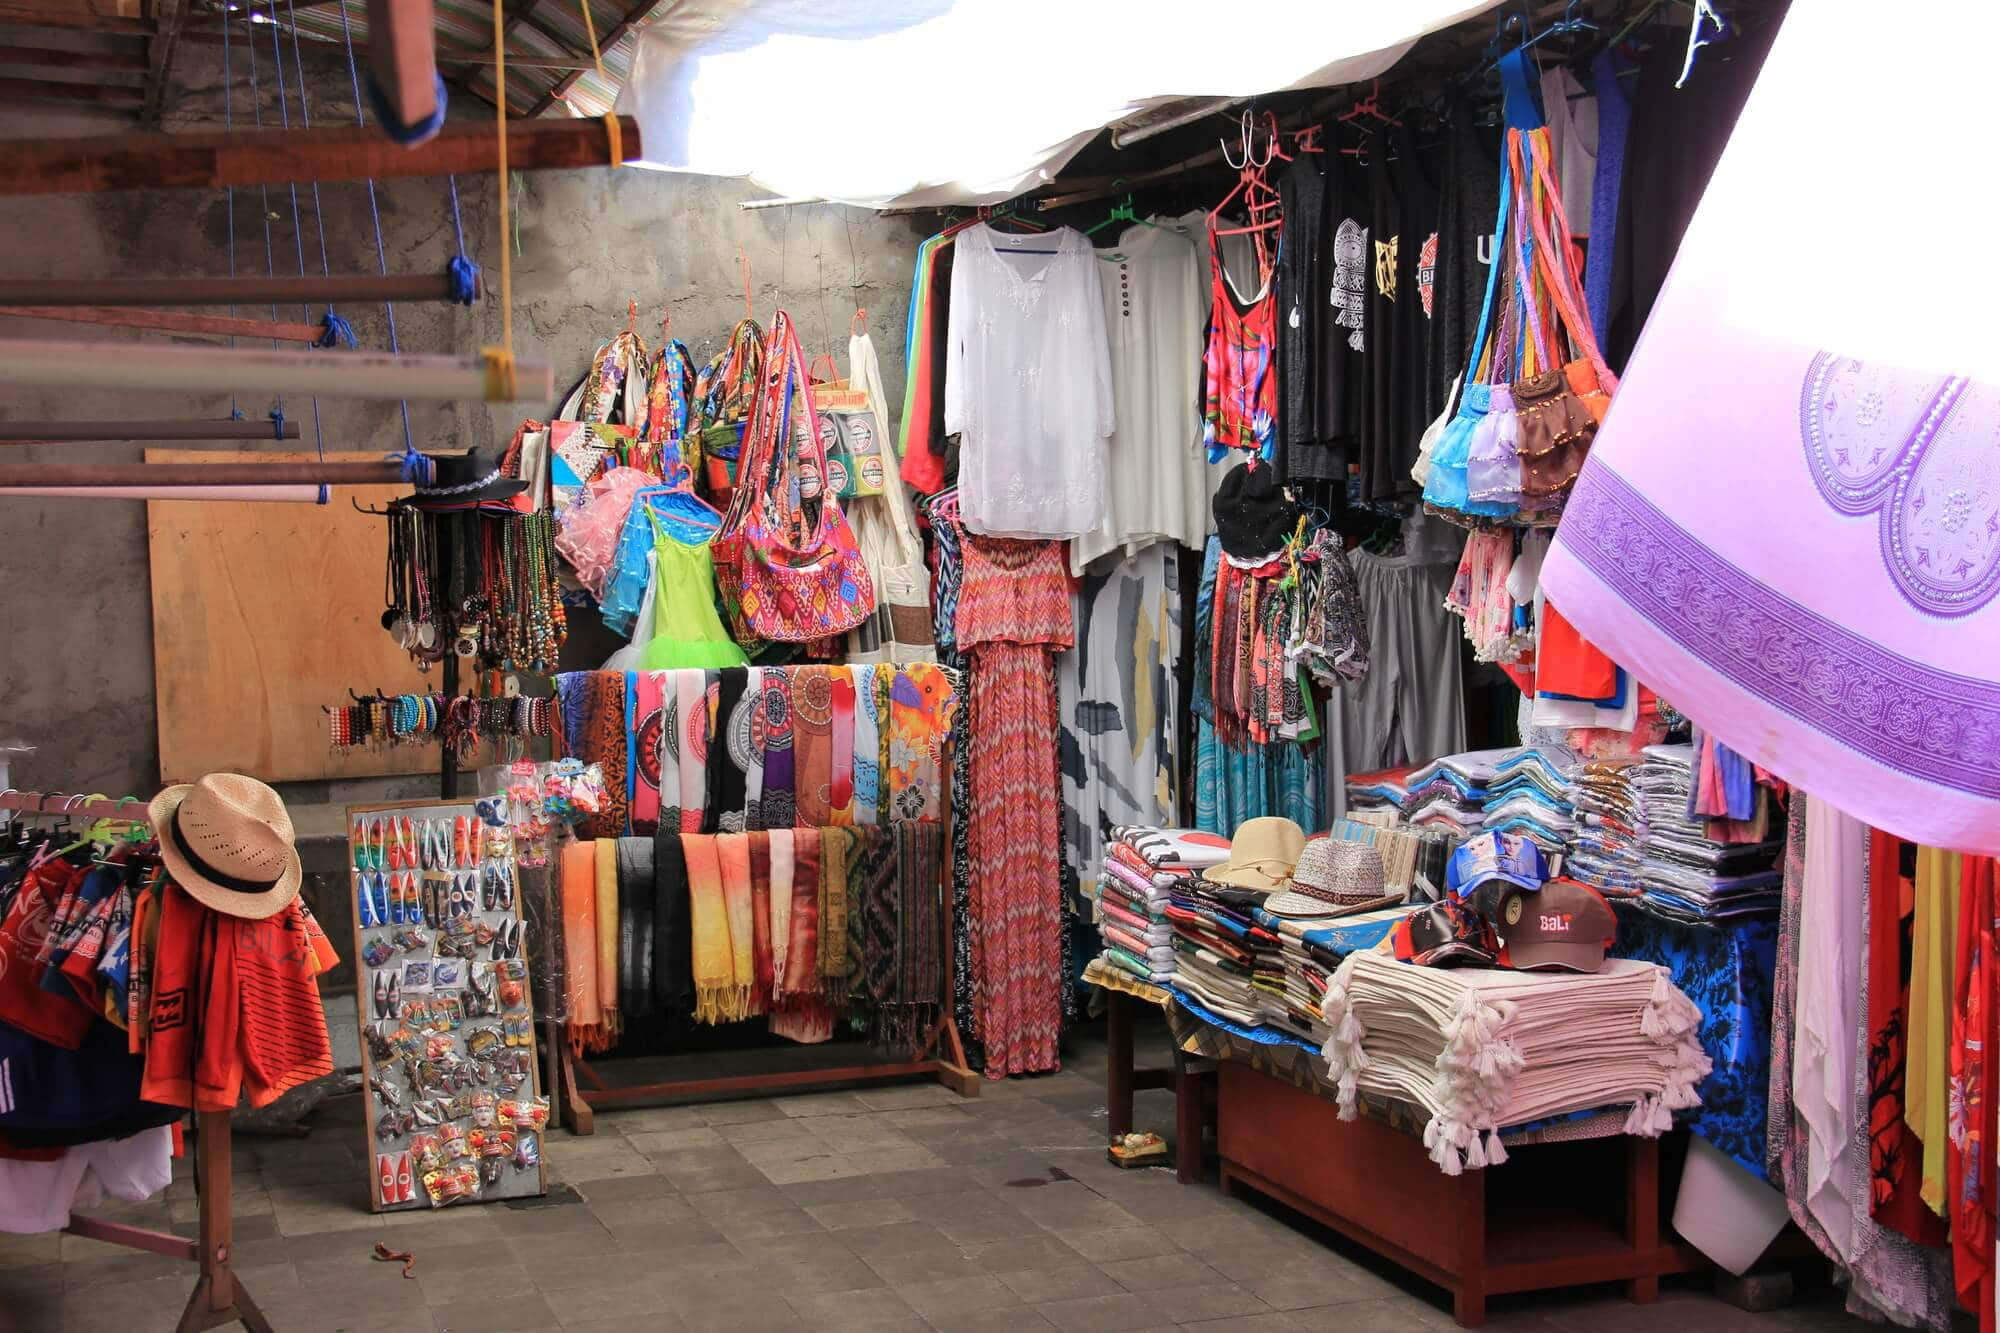 Everything you need to know about the most common scams in Bali - Overcharging at markets